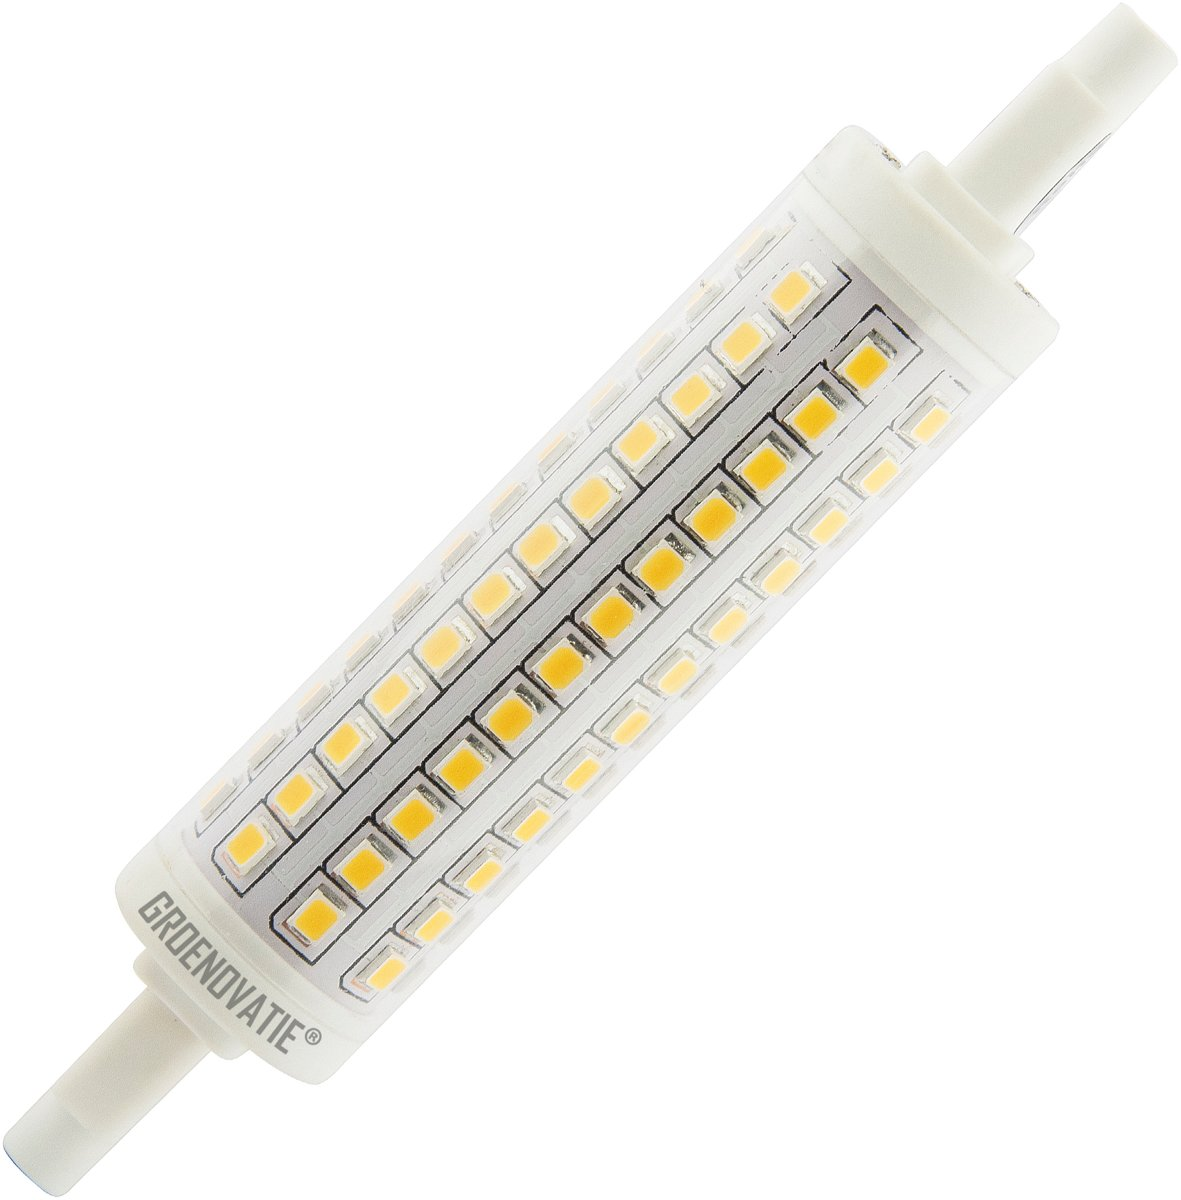 R7s Led Dimbaar Philips Groenovatie Led Lamp R7s Fitting 10w 22x118 Mm 360º Dimbaar Warm Wit